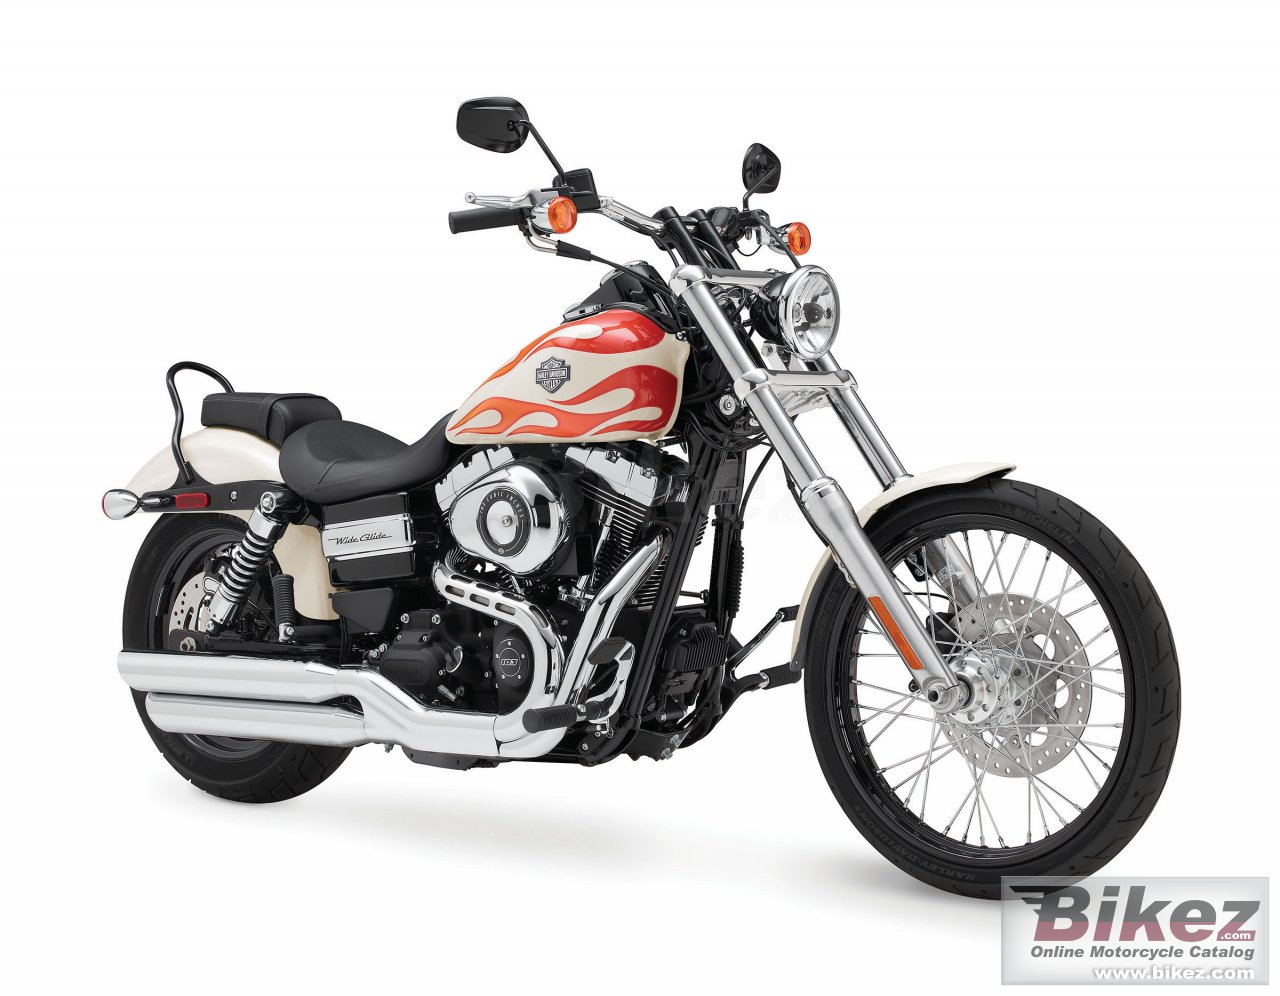 Big Harley-Davidson dyna wide glide picture and wallpaper from Bikez.com